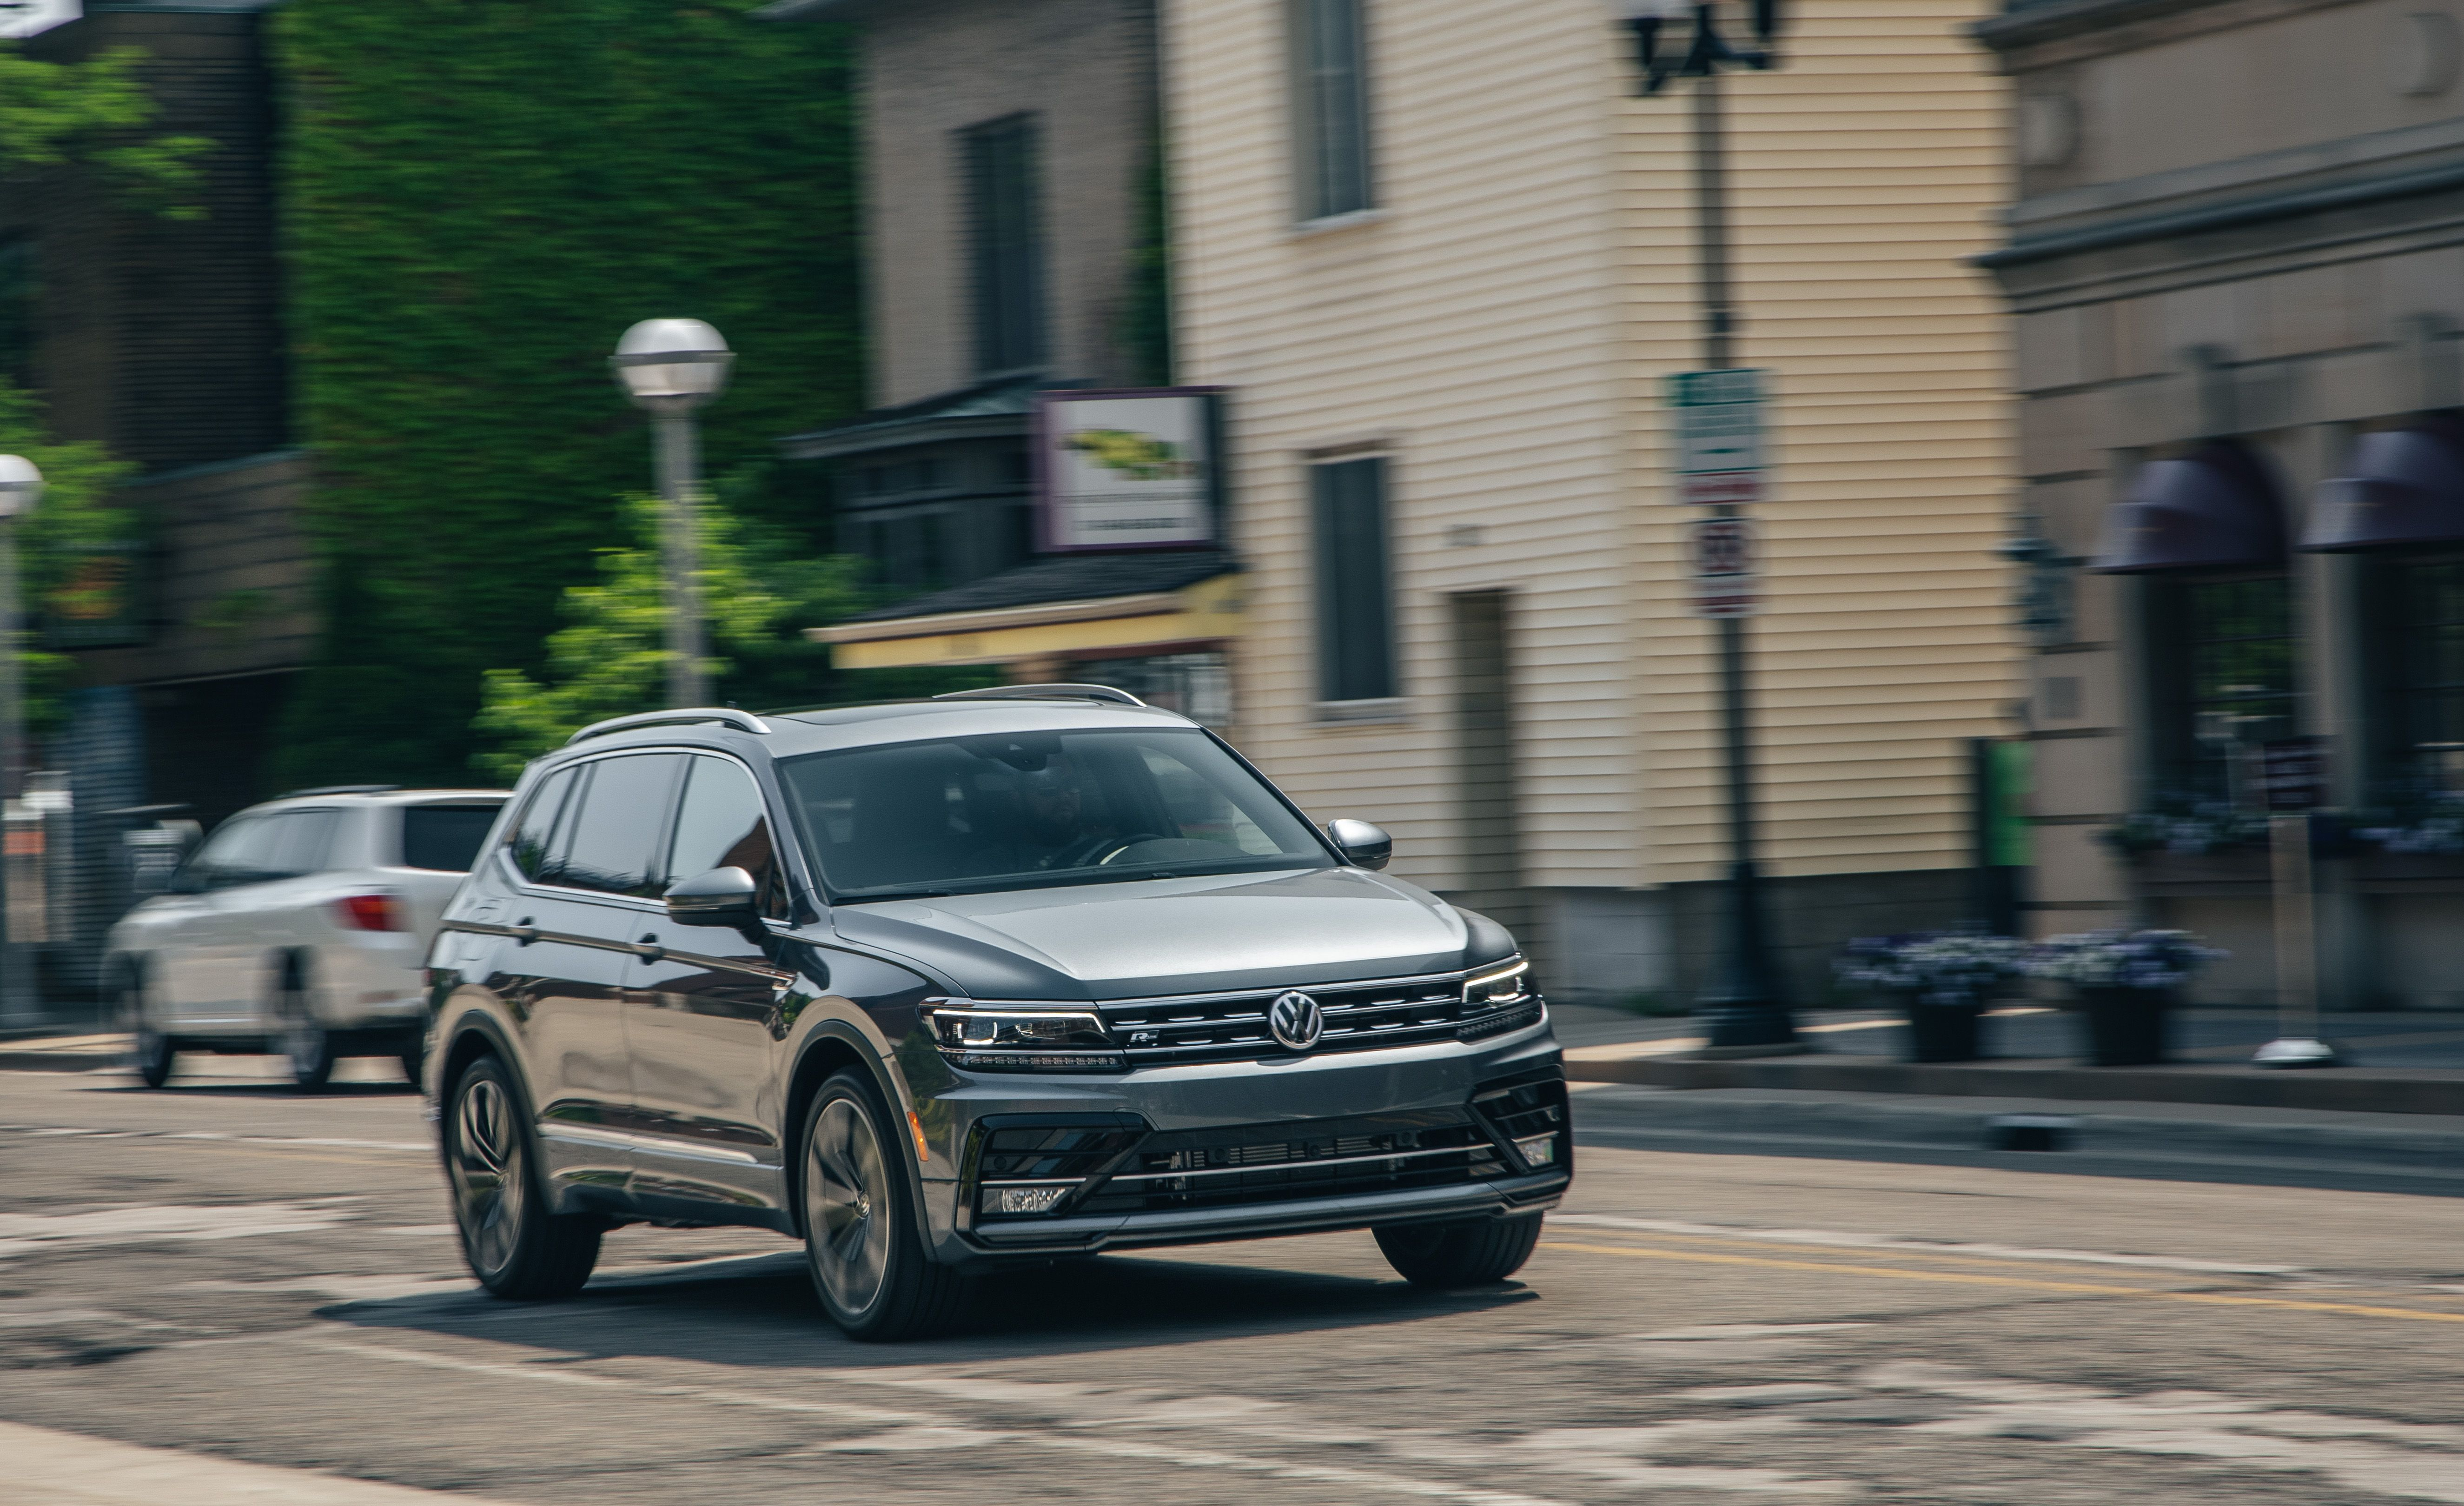 2019 Volkswagen Tiguan Tries to Be a Wagon Alternative